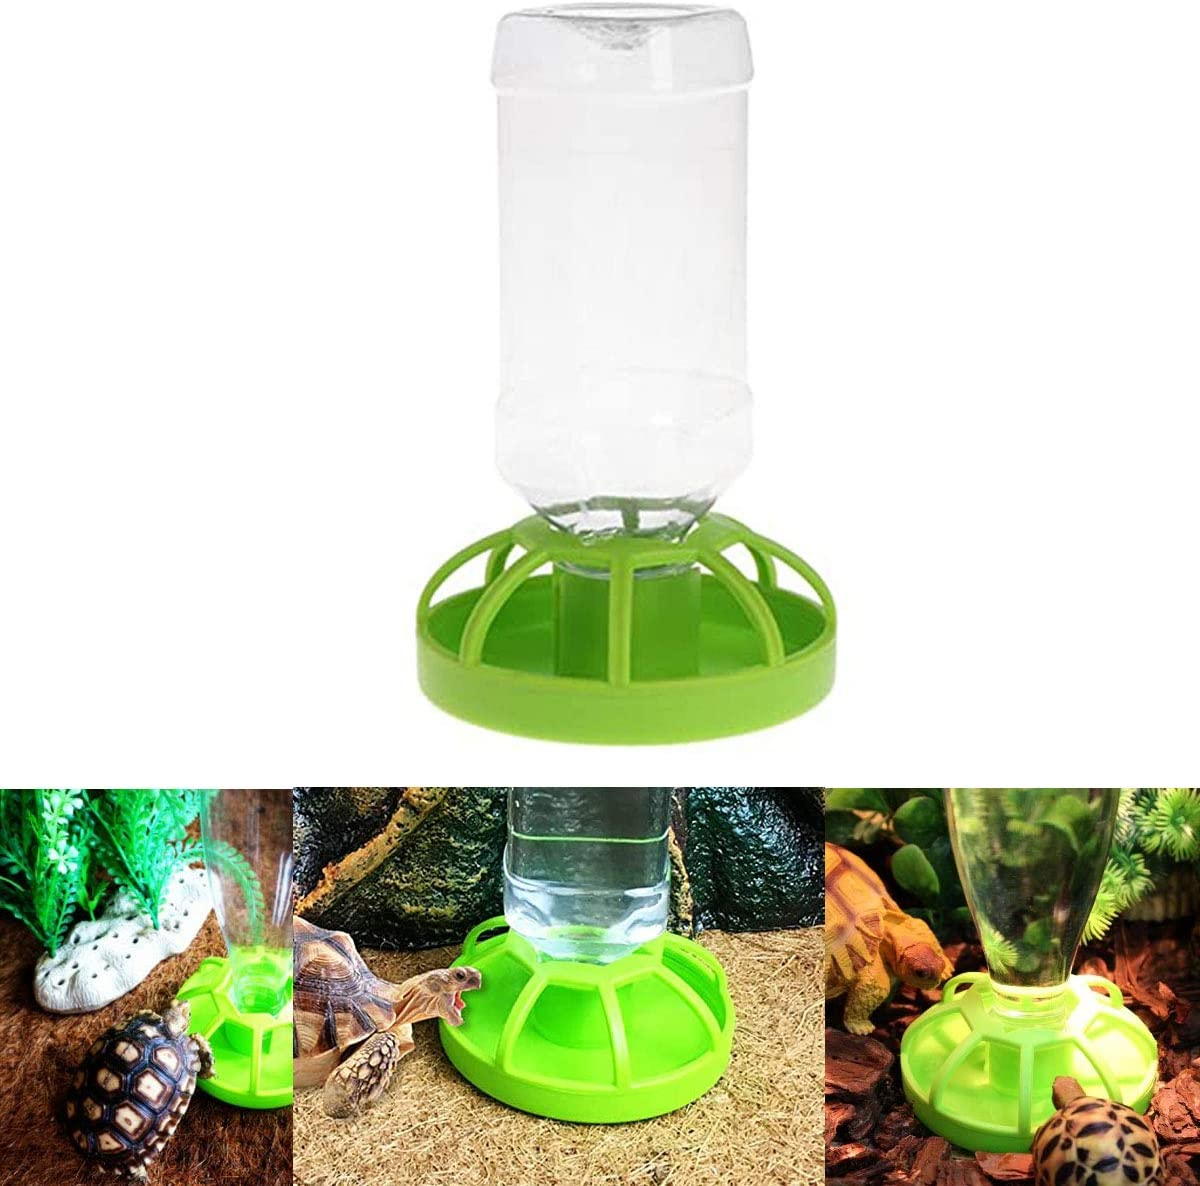 Ailindany Reptile Food Dish Automatic Water Drinker Dispenser Feeding Bowl Lizard Tortoise Feeder Round Dish Terrarium Dish Drink Bottle for Turtle Tortoise Lizard